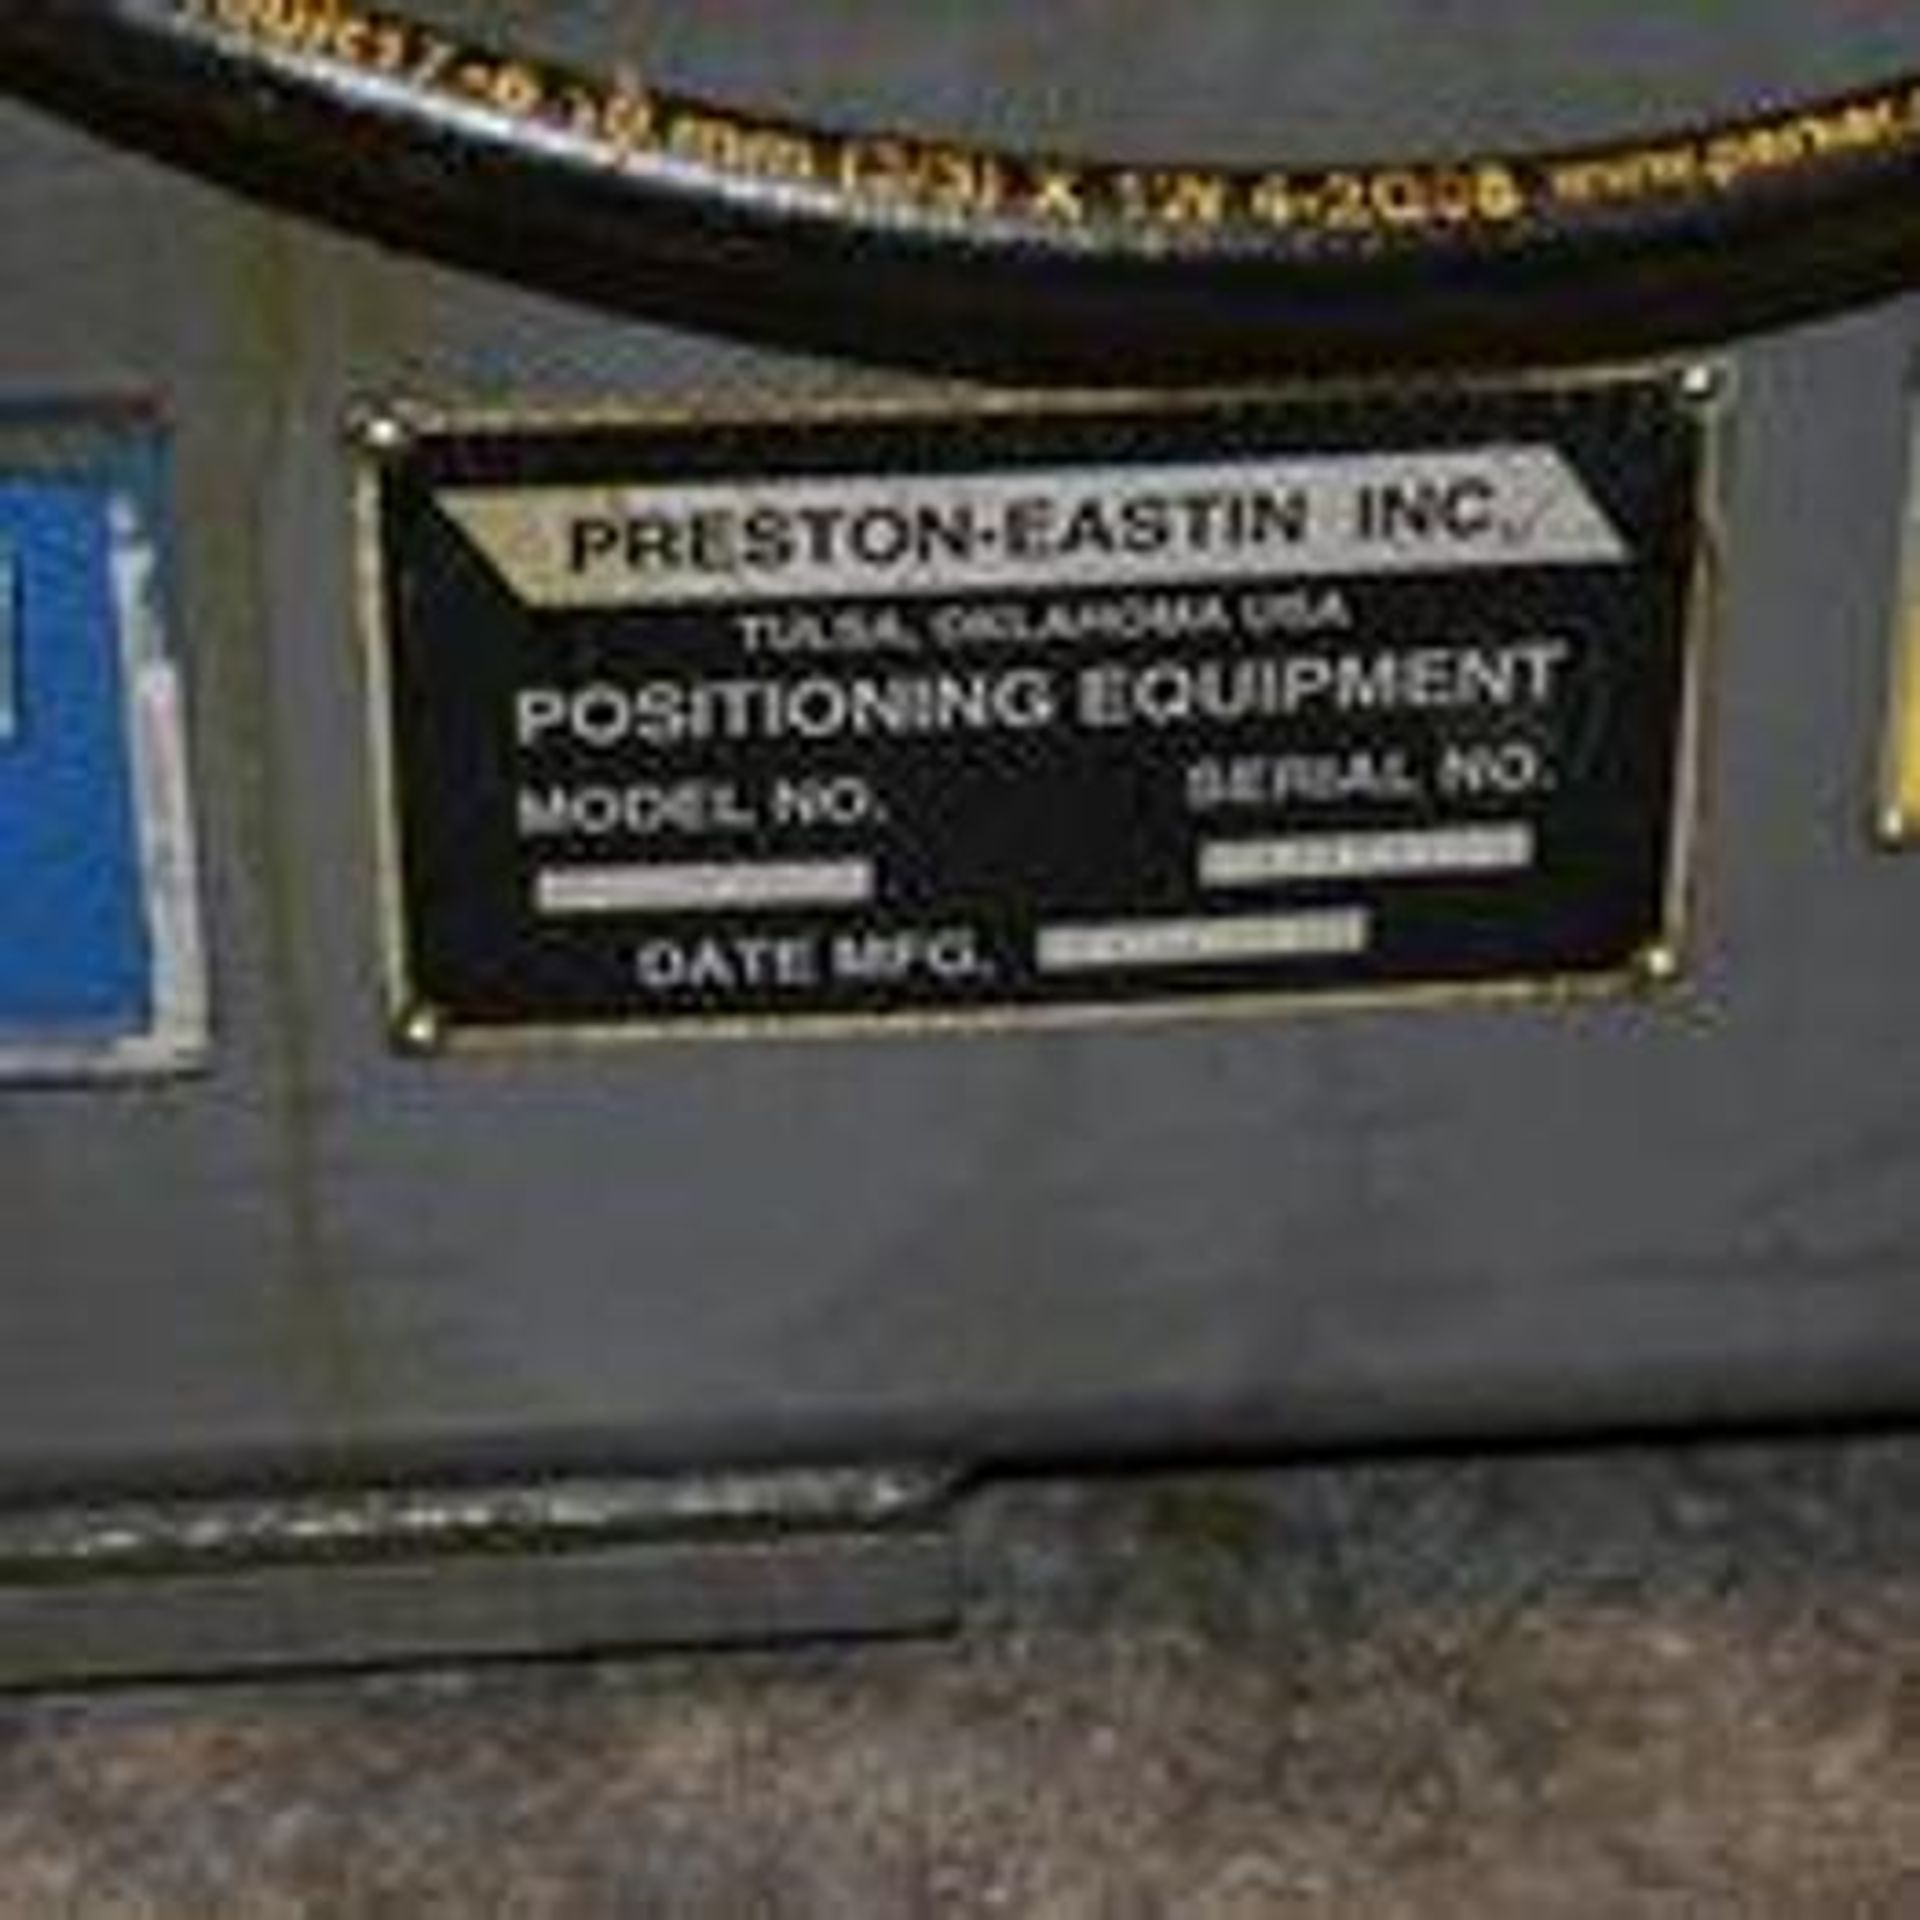 YASKAWA MOTOMAN EA1900N MULTI-ARM LARGE MIG WELDING CELL FOR LARGE TUBE AND PIPE APPLICATIONS - Image 51 of 53